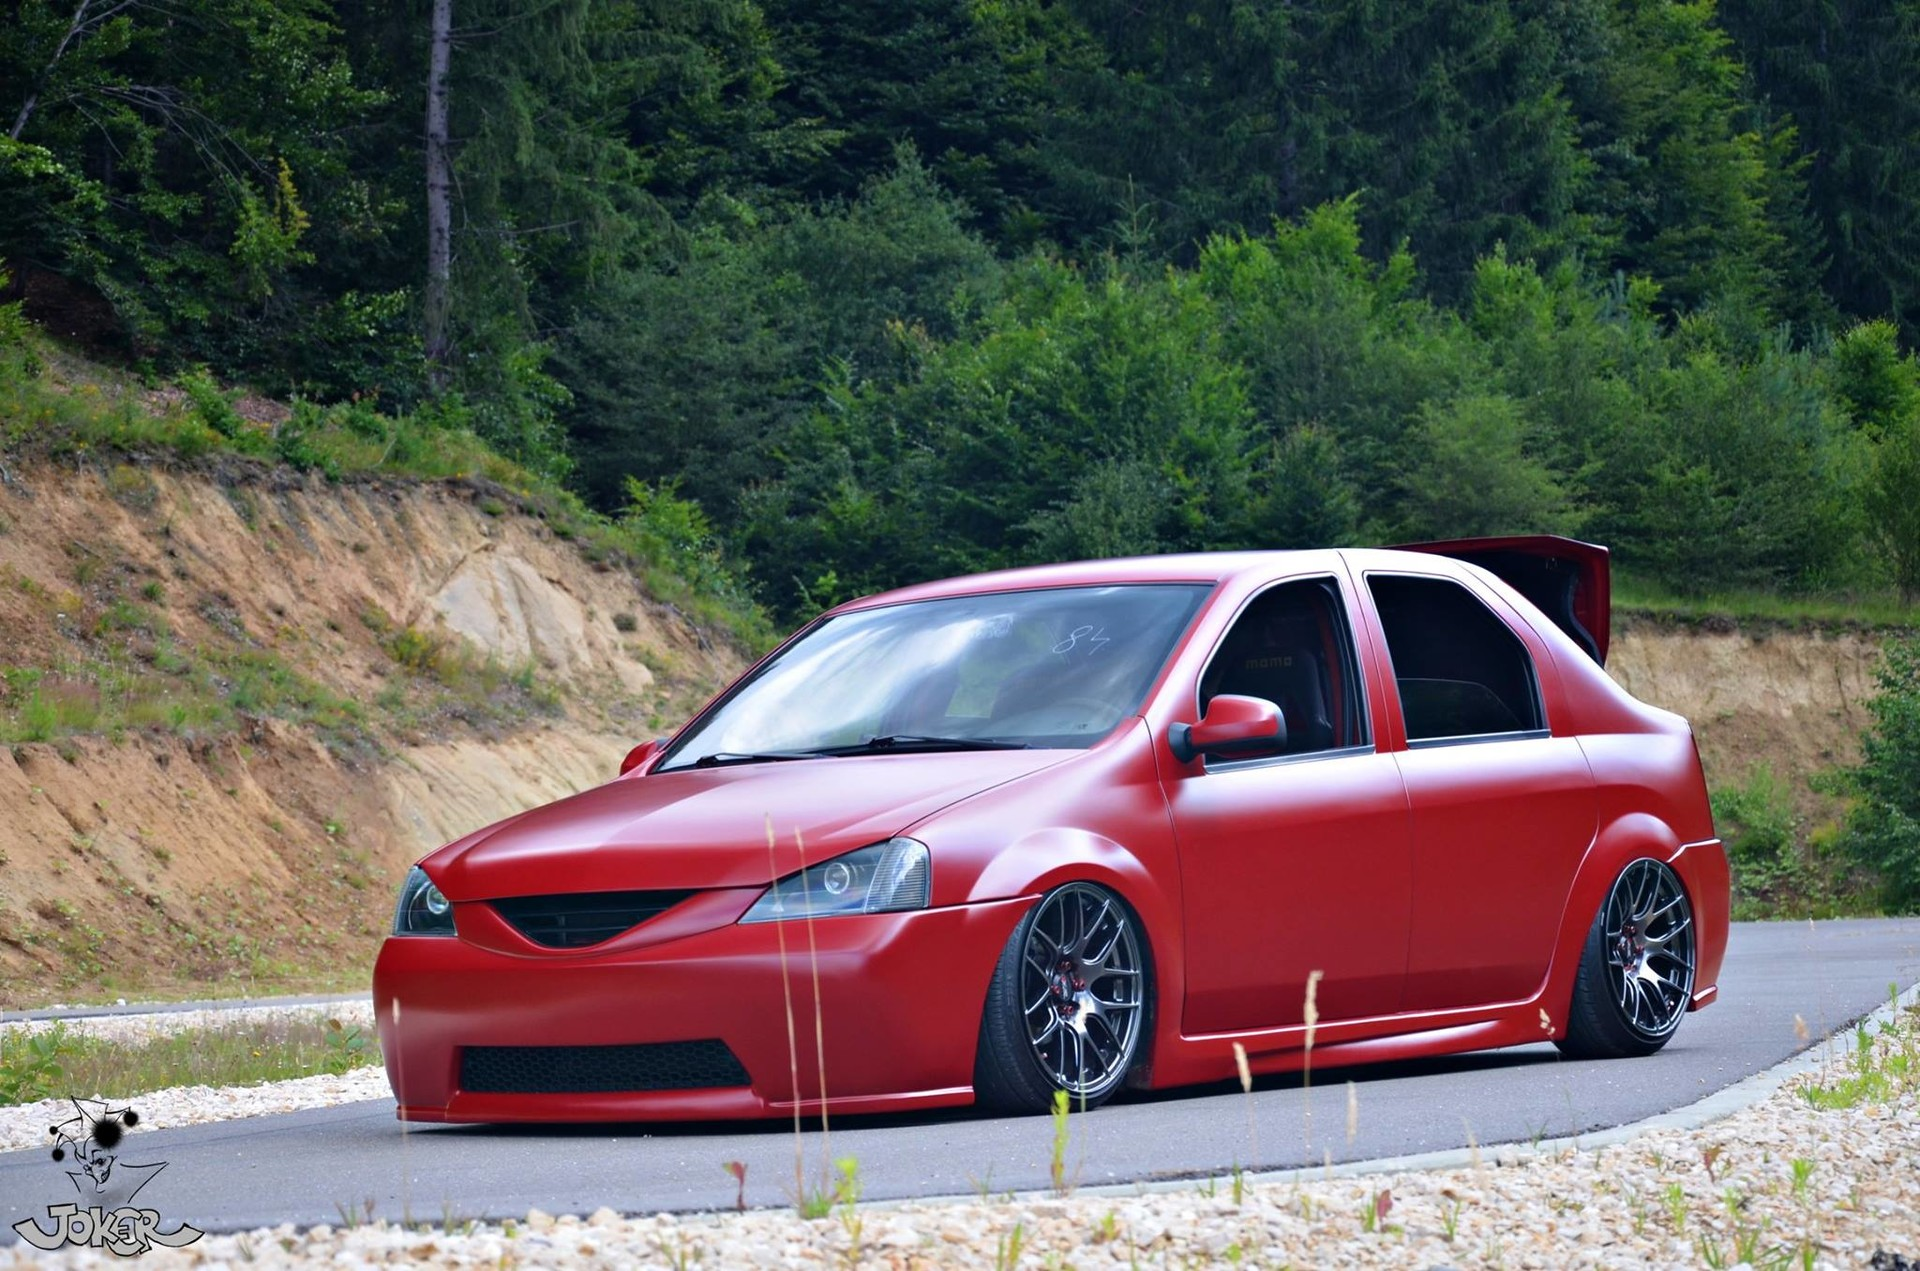 This is the car looked before the refresh. Air-ride, XXR wheels and a lot of custom body work.